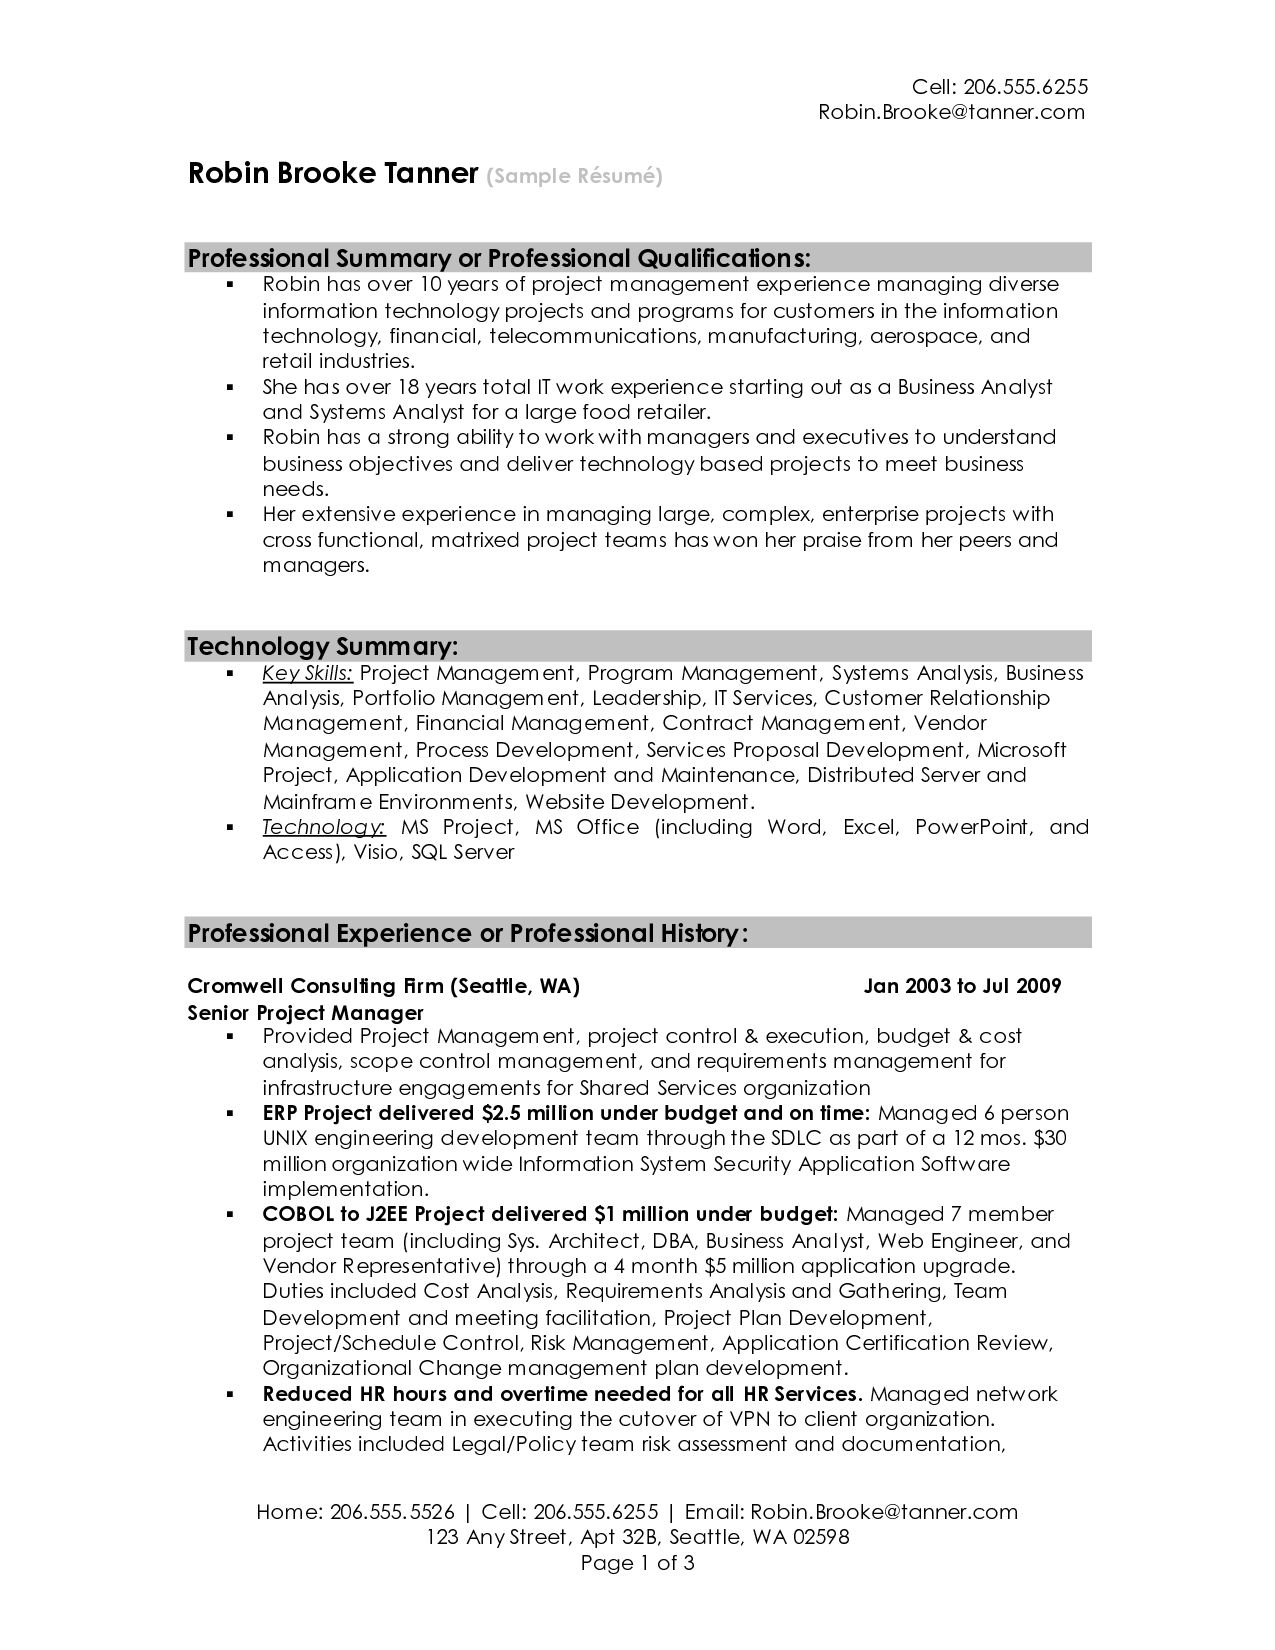 Resume Samples For Professionals Professional Summary Resume Examples Professional Resume